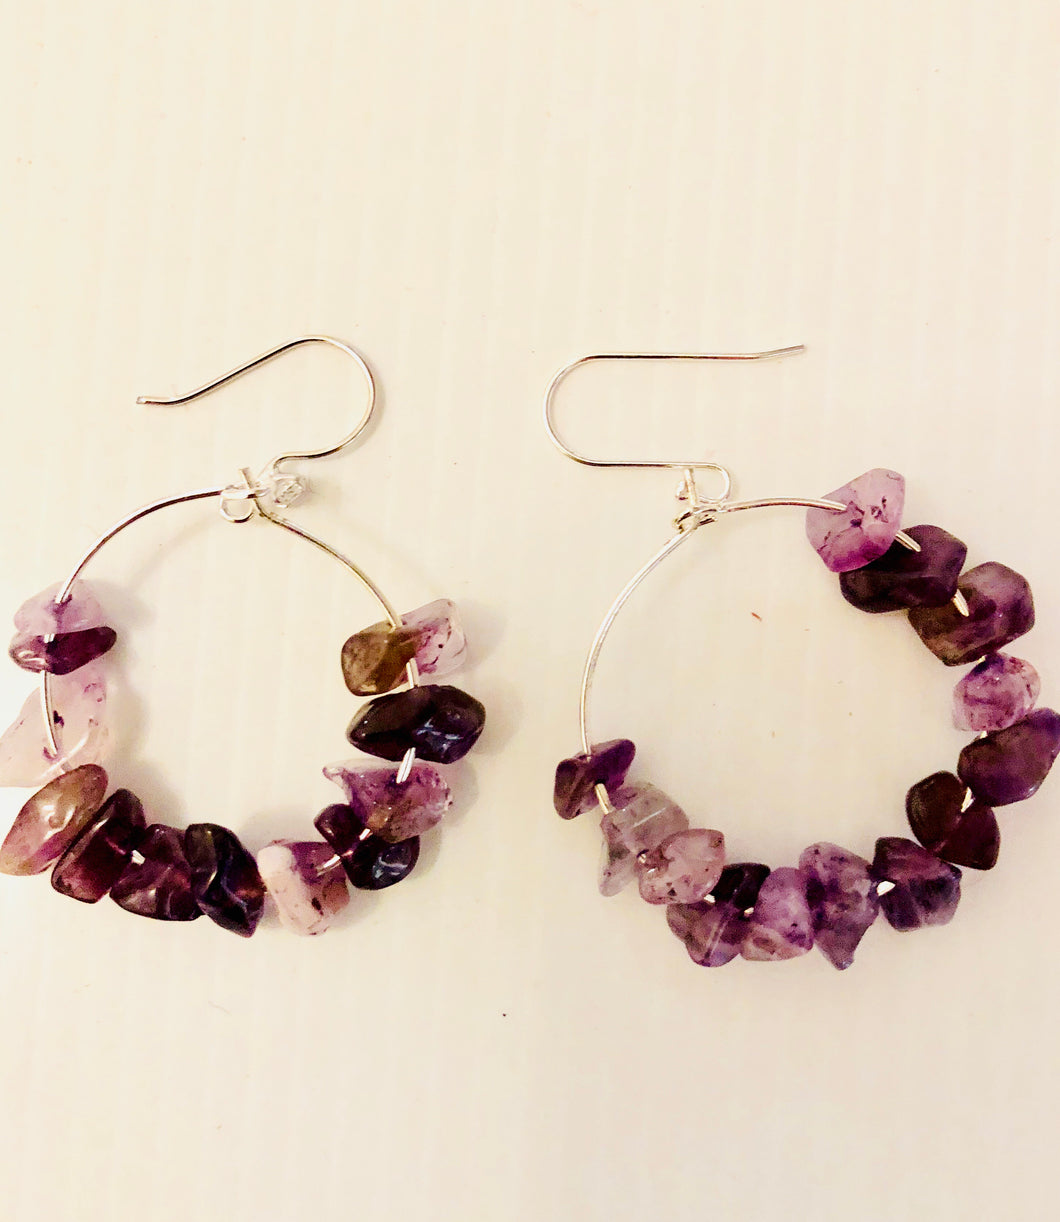 hoop earrings with amethyst chips and sterling silver hooks